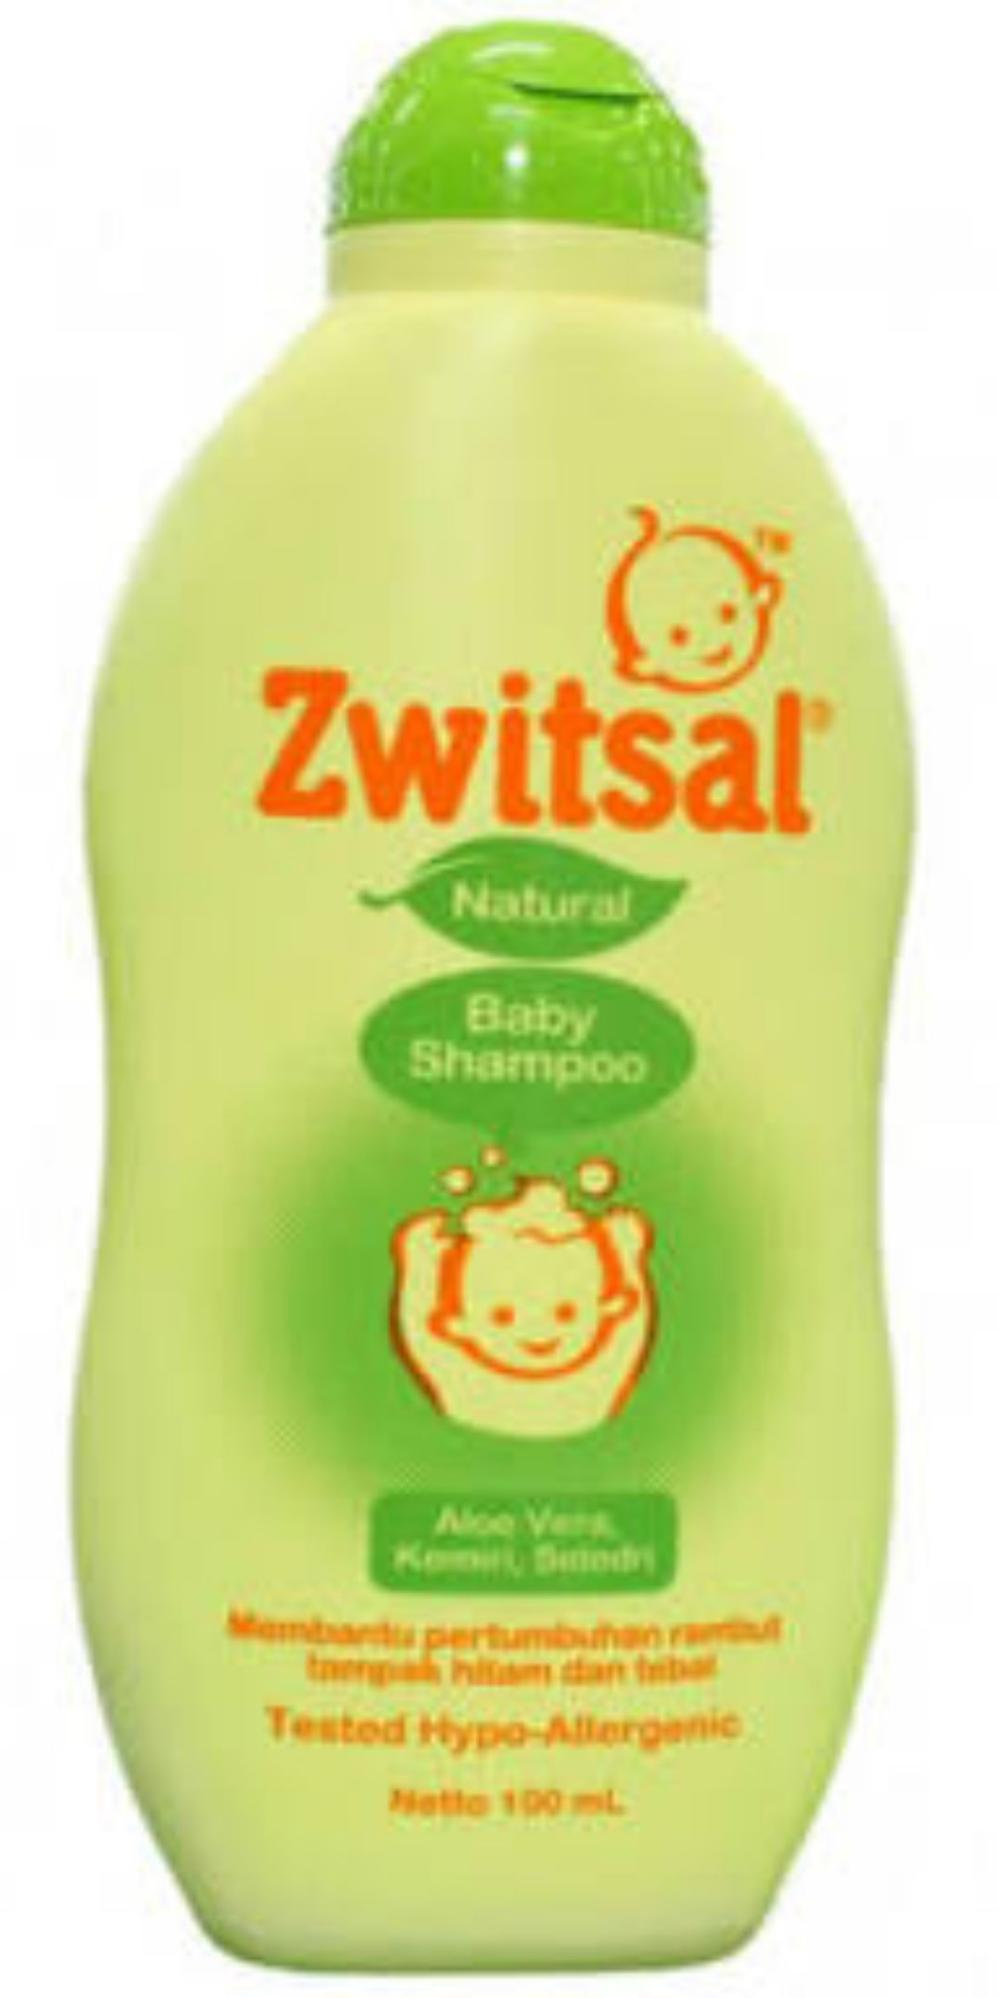 Kelebihan Zwitsal Kids Shampoo Natural Green 180ml Terkini Daftar Bath Beauty Pink Pump 280ml Twin Pack Baby 100ml